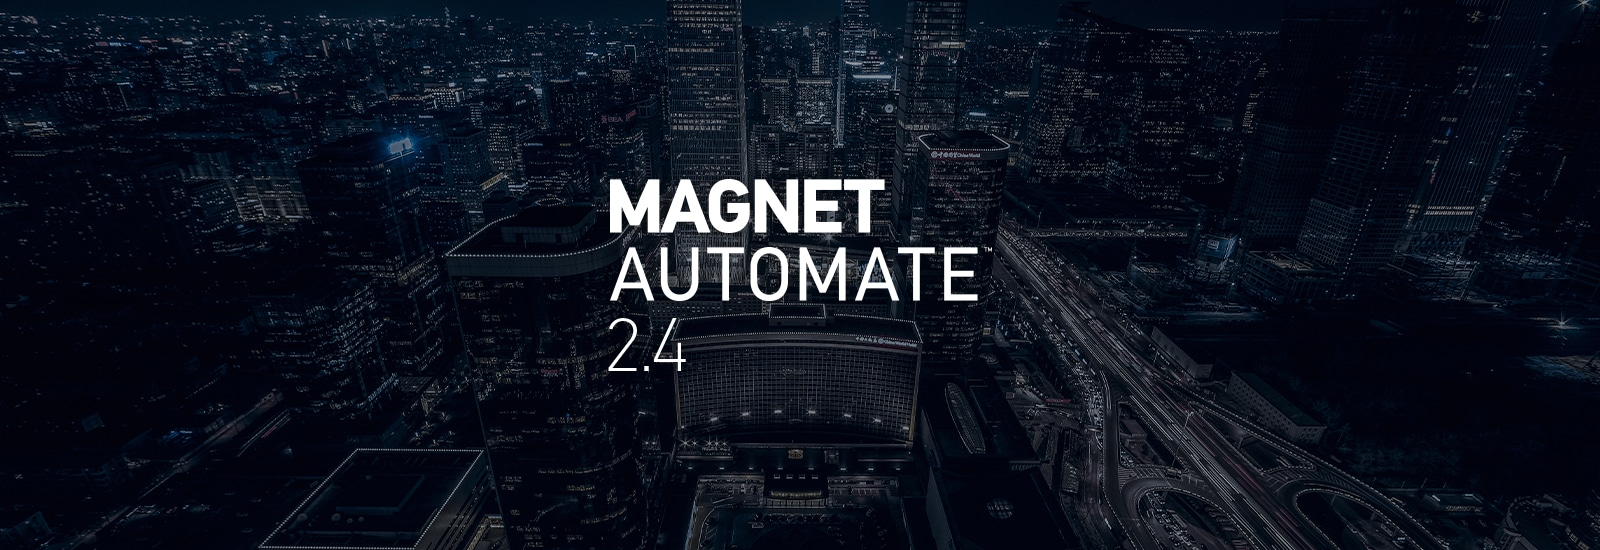 Magnet AUTOMATE 2.4